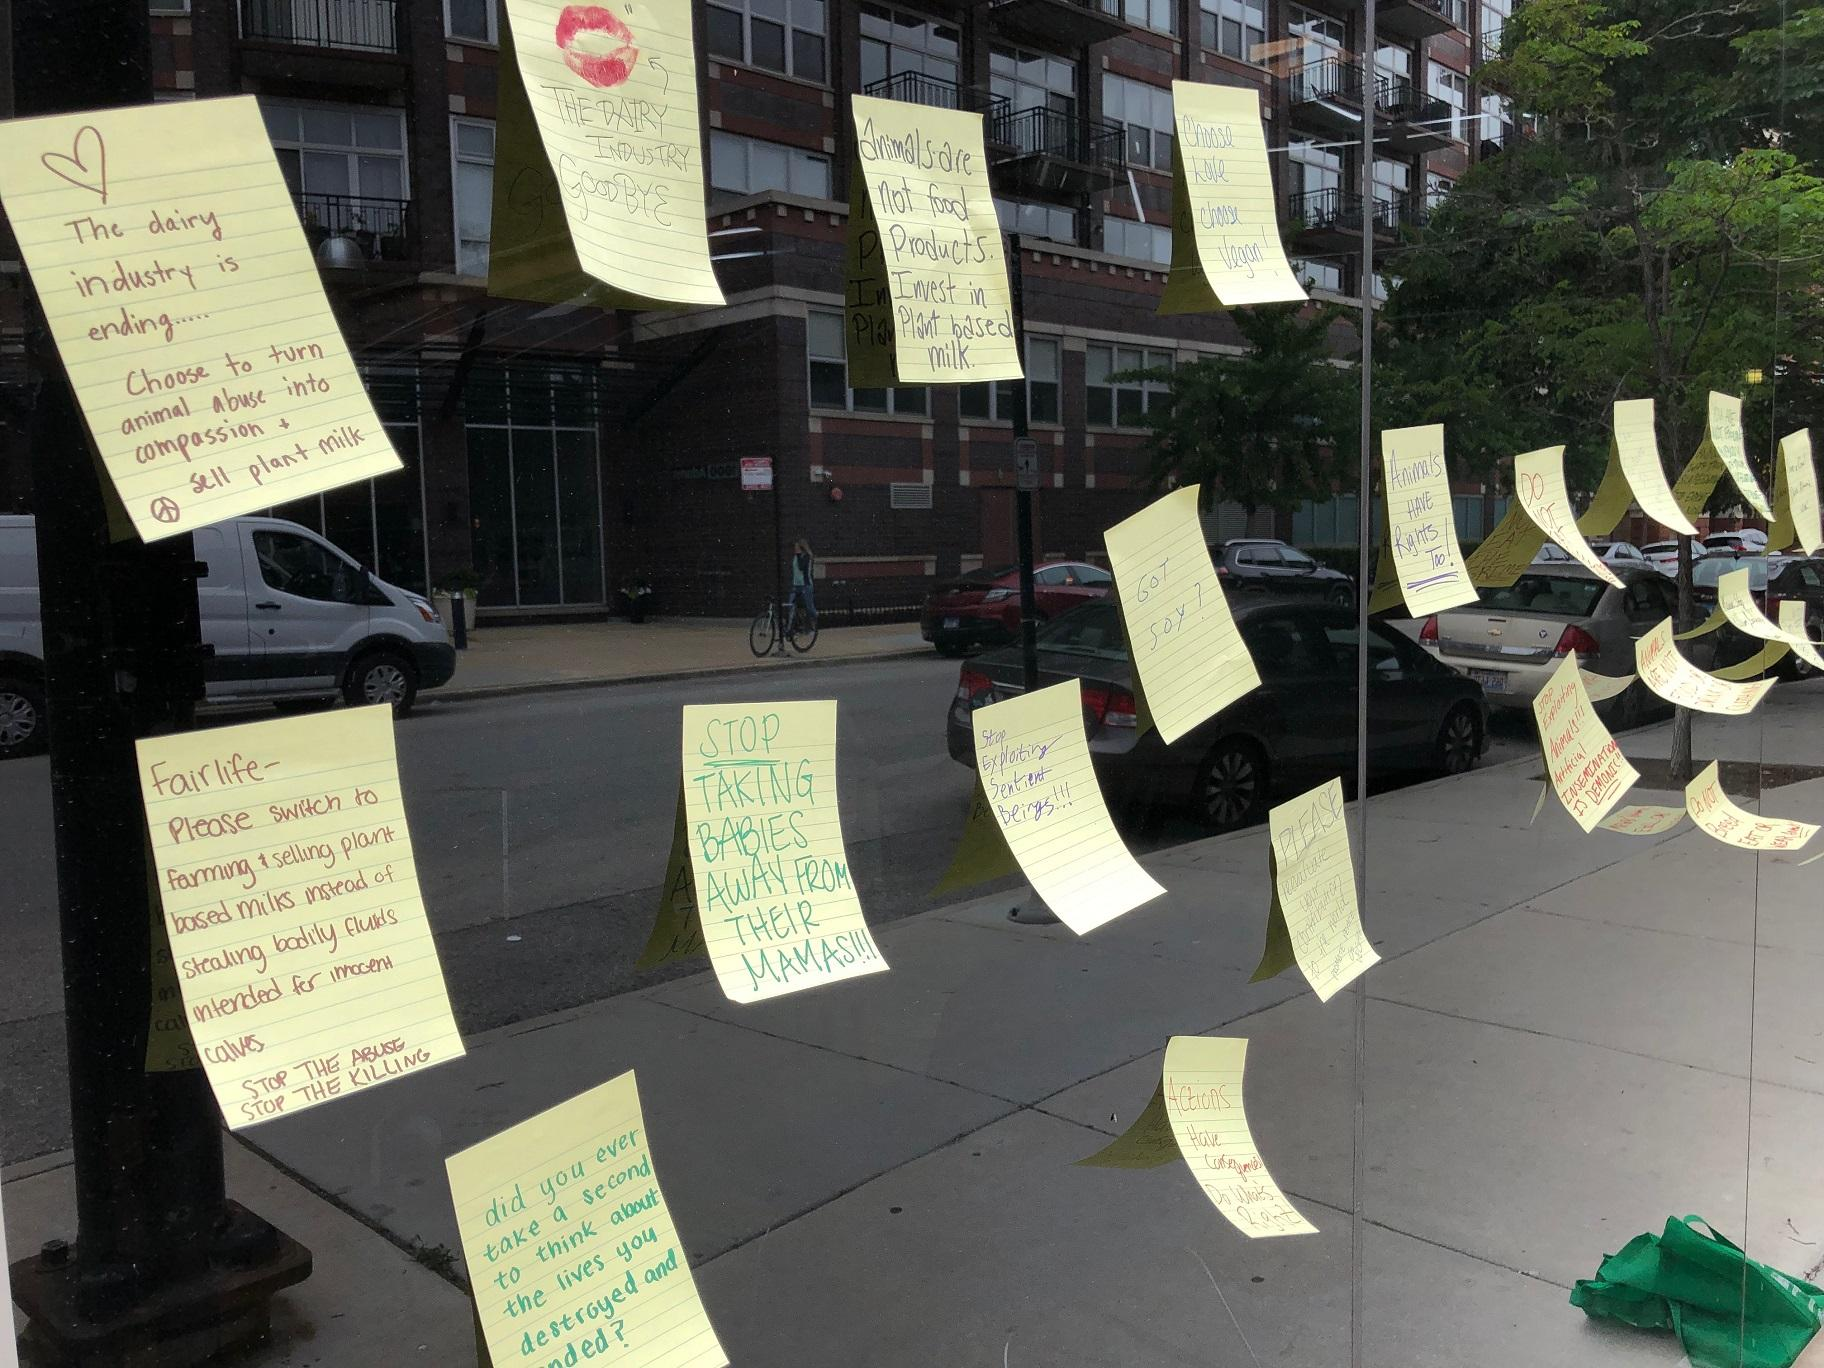 Notes left at Fairlife's Chicago headquarters by animal welfare advocates (Alex Ruppenthal / WTTW News)